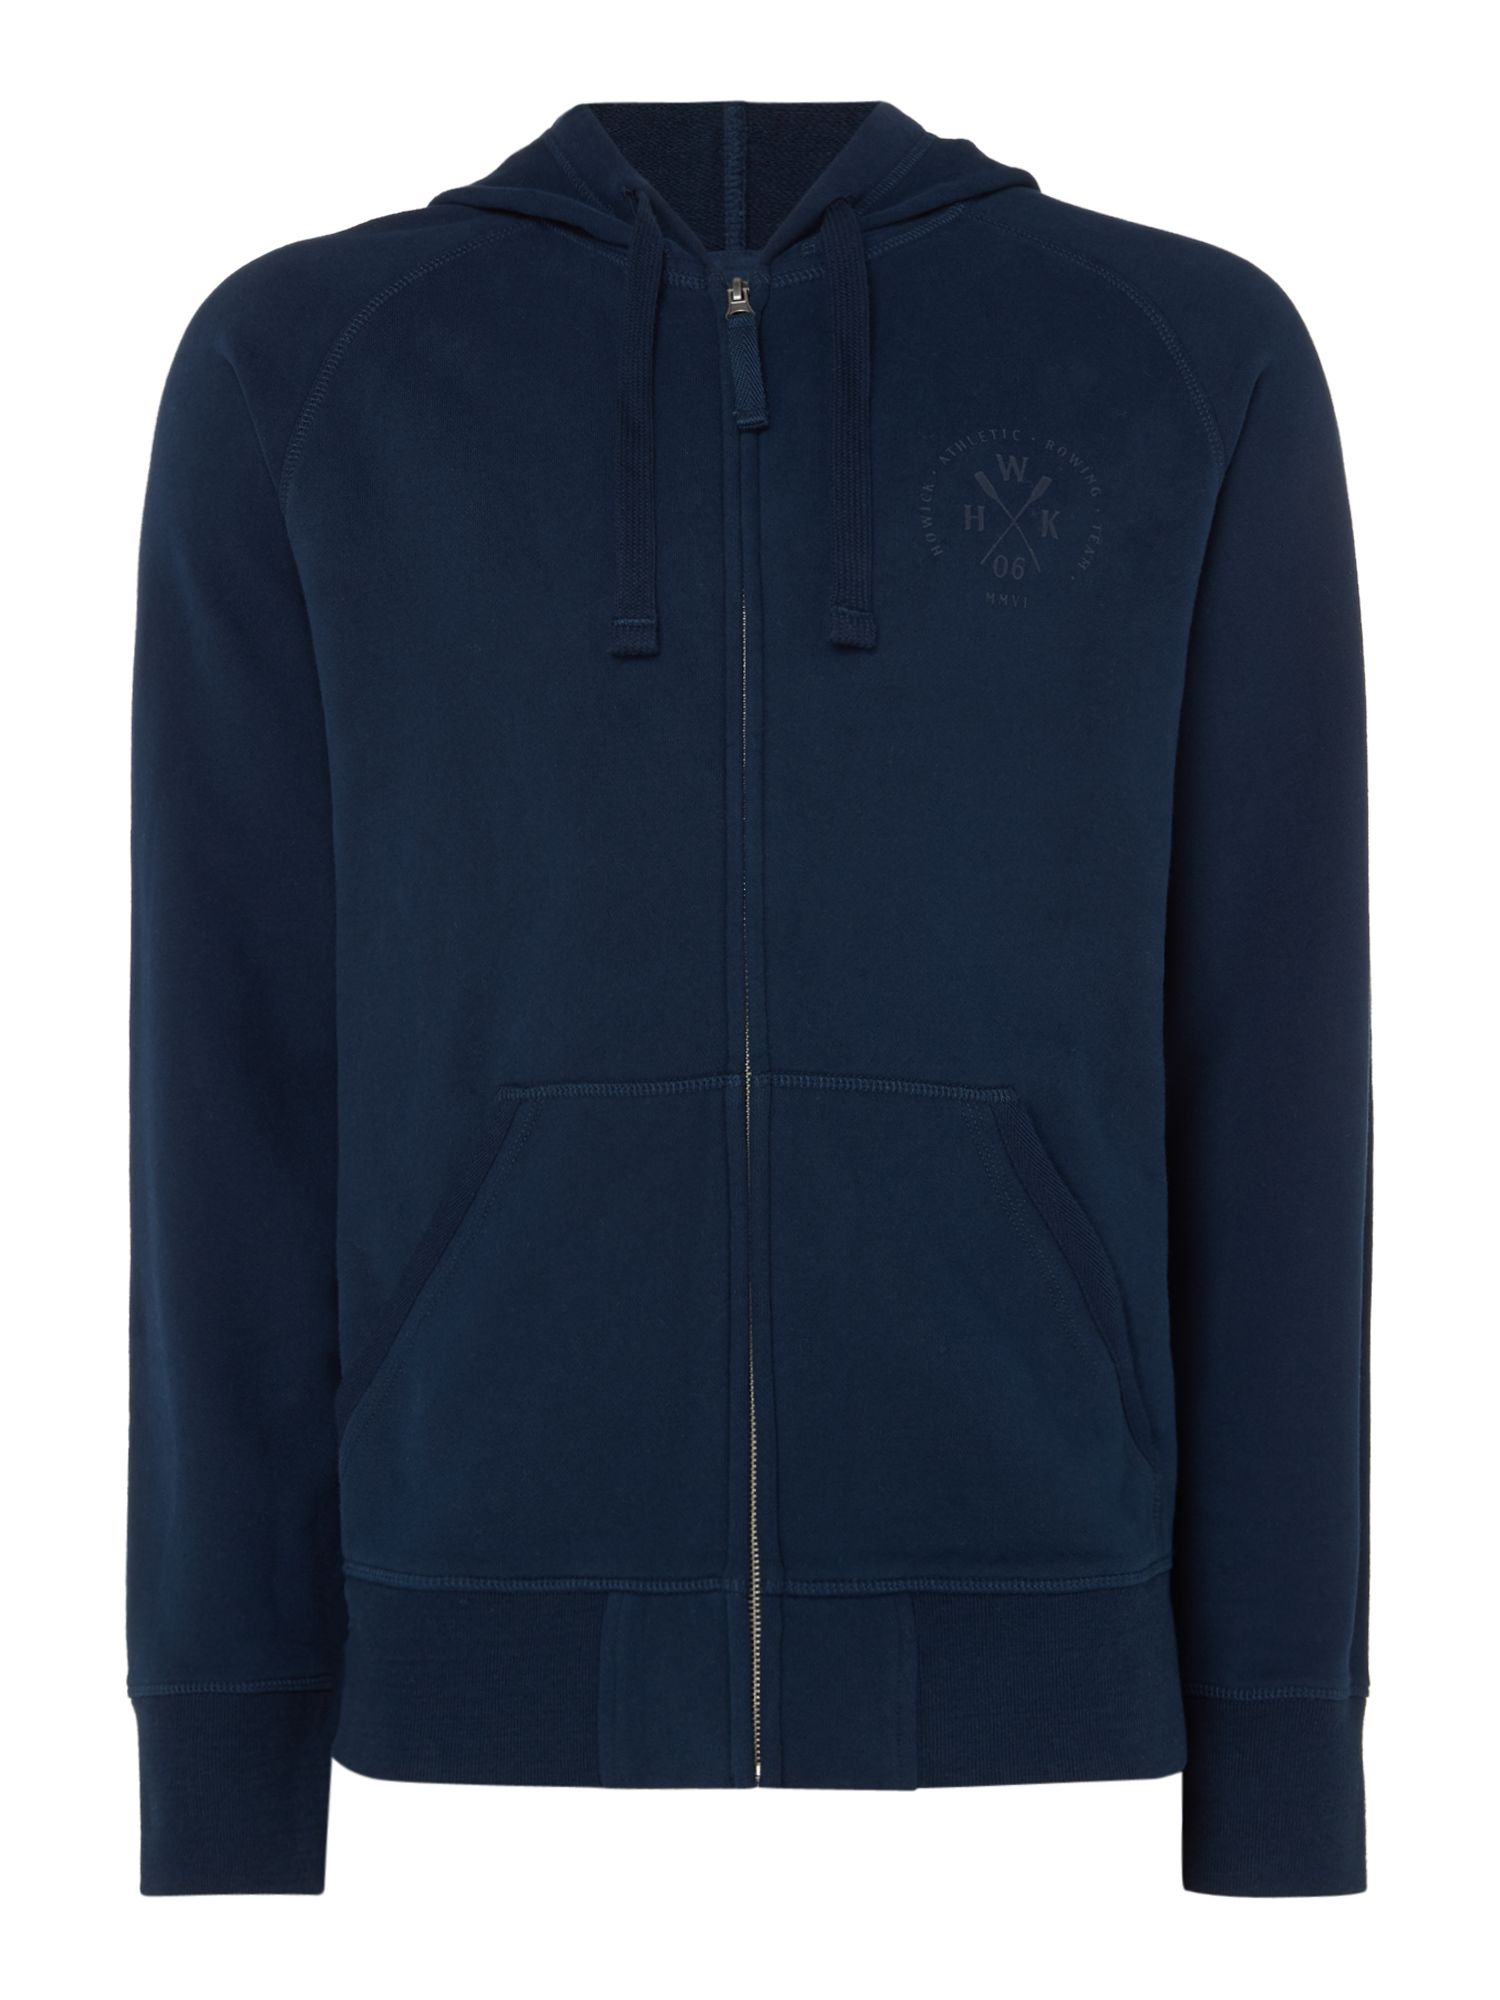 Men's Howick Athletic Borg Lined Zip Through Hoodie, Blue